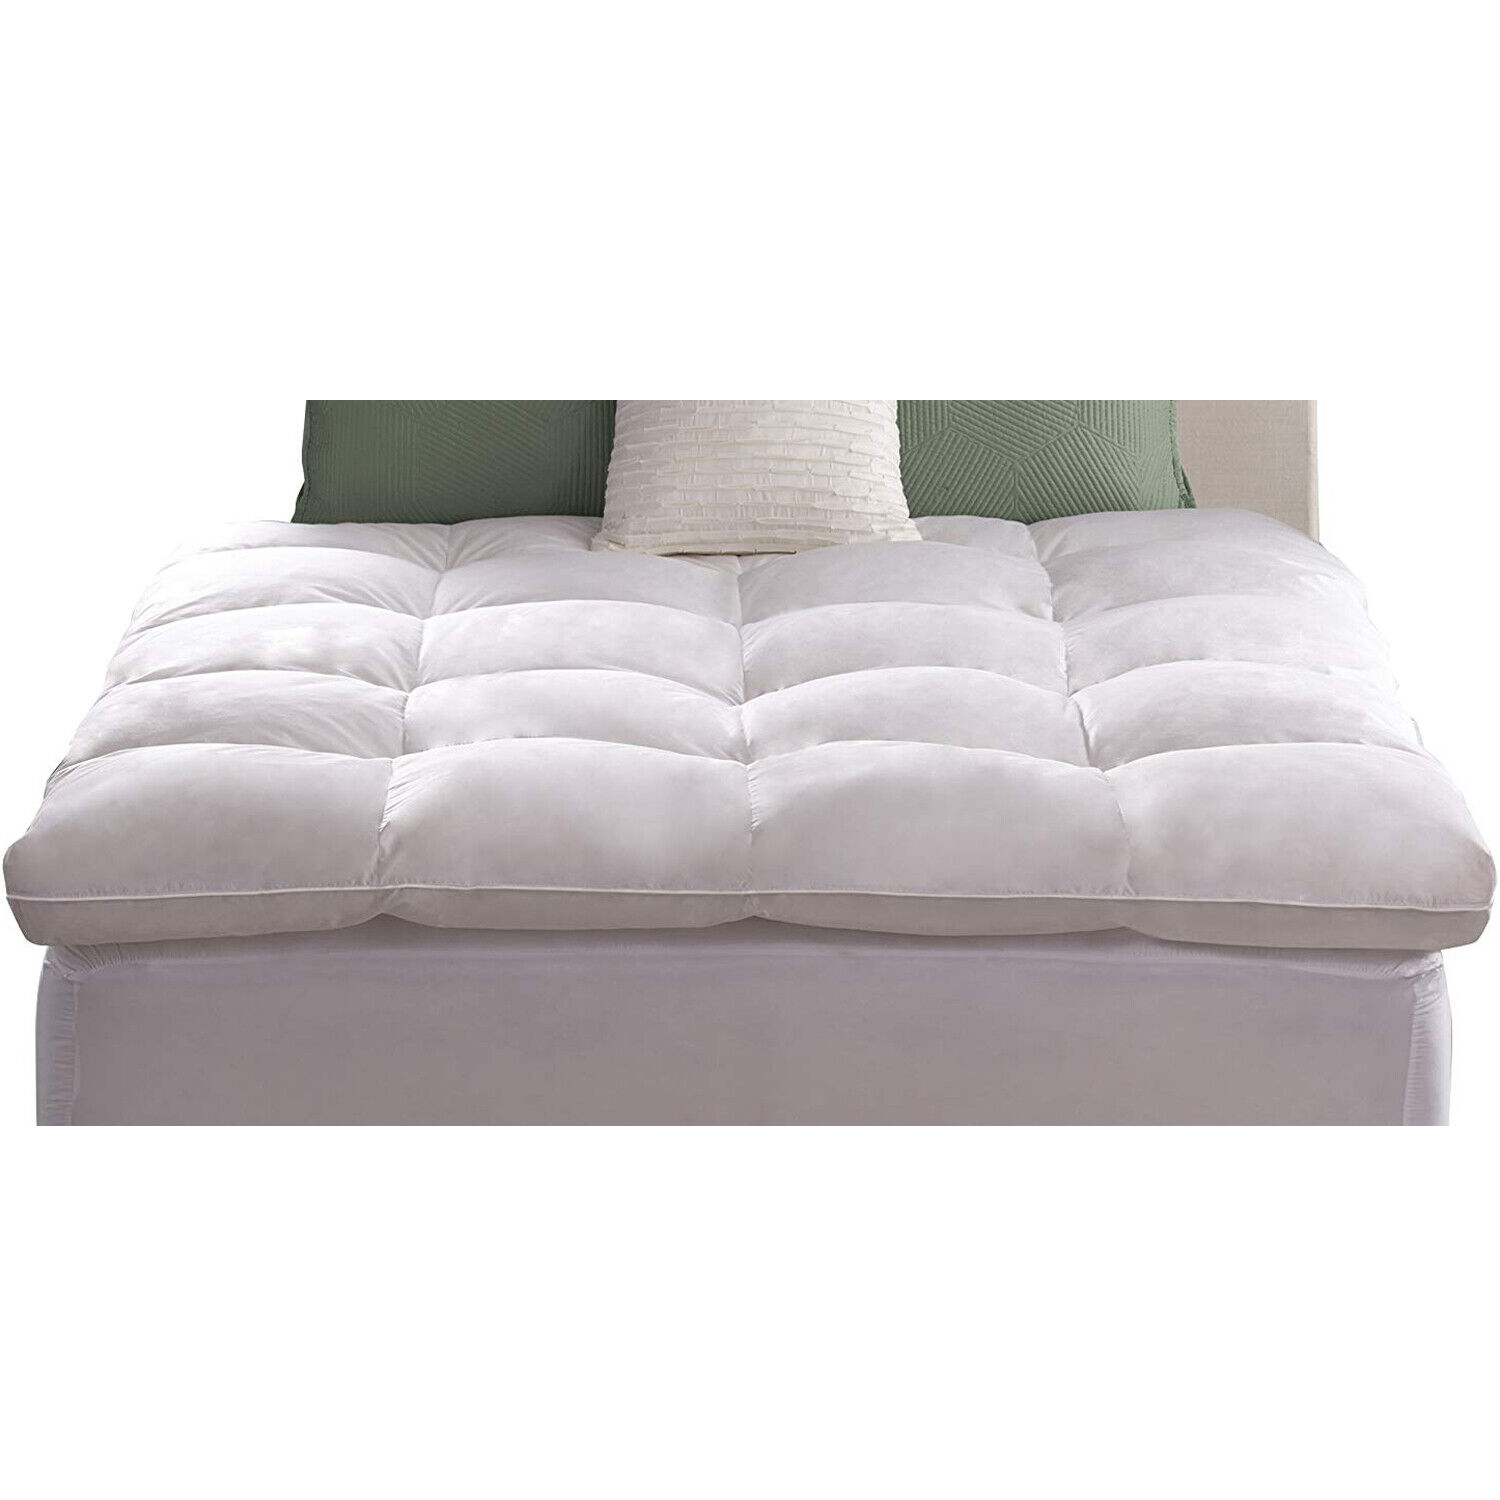 Extra Thick Matress Topper Feather Bed Luxe Loft Baffle Box Natural Fill Mattres